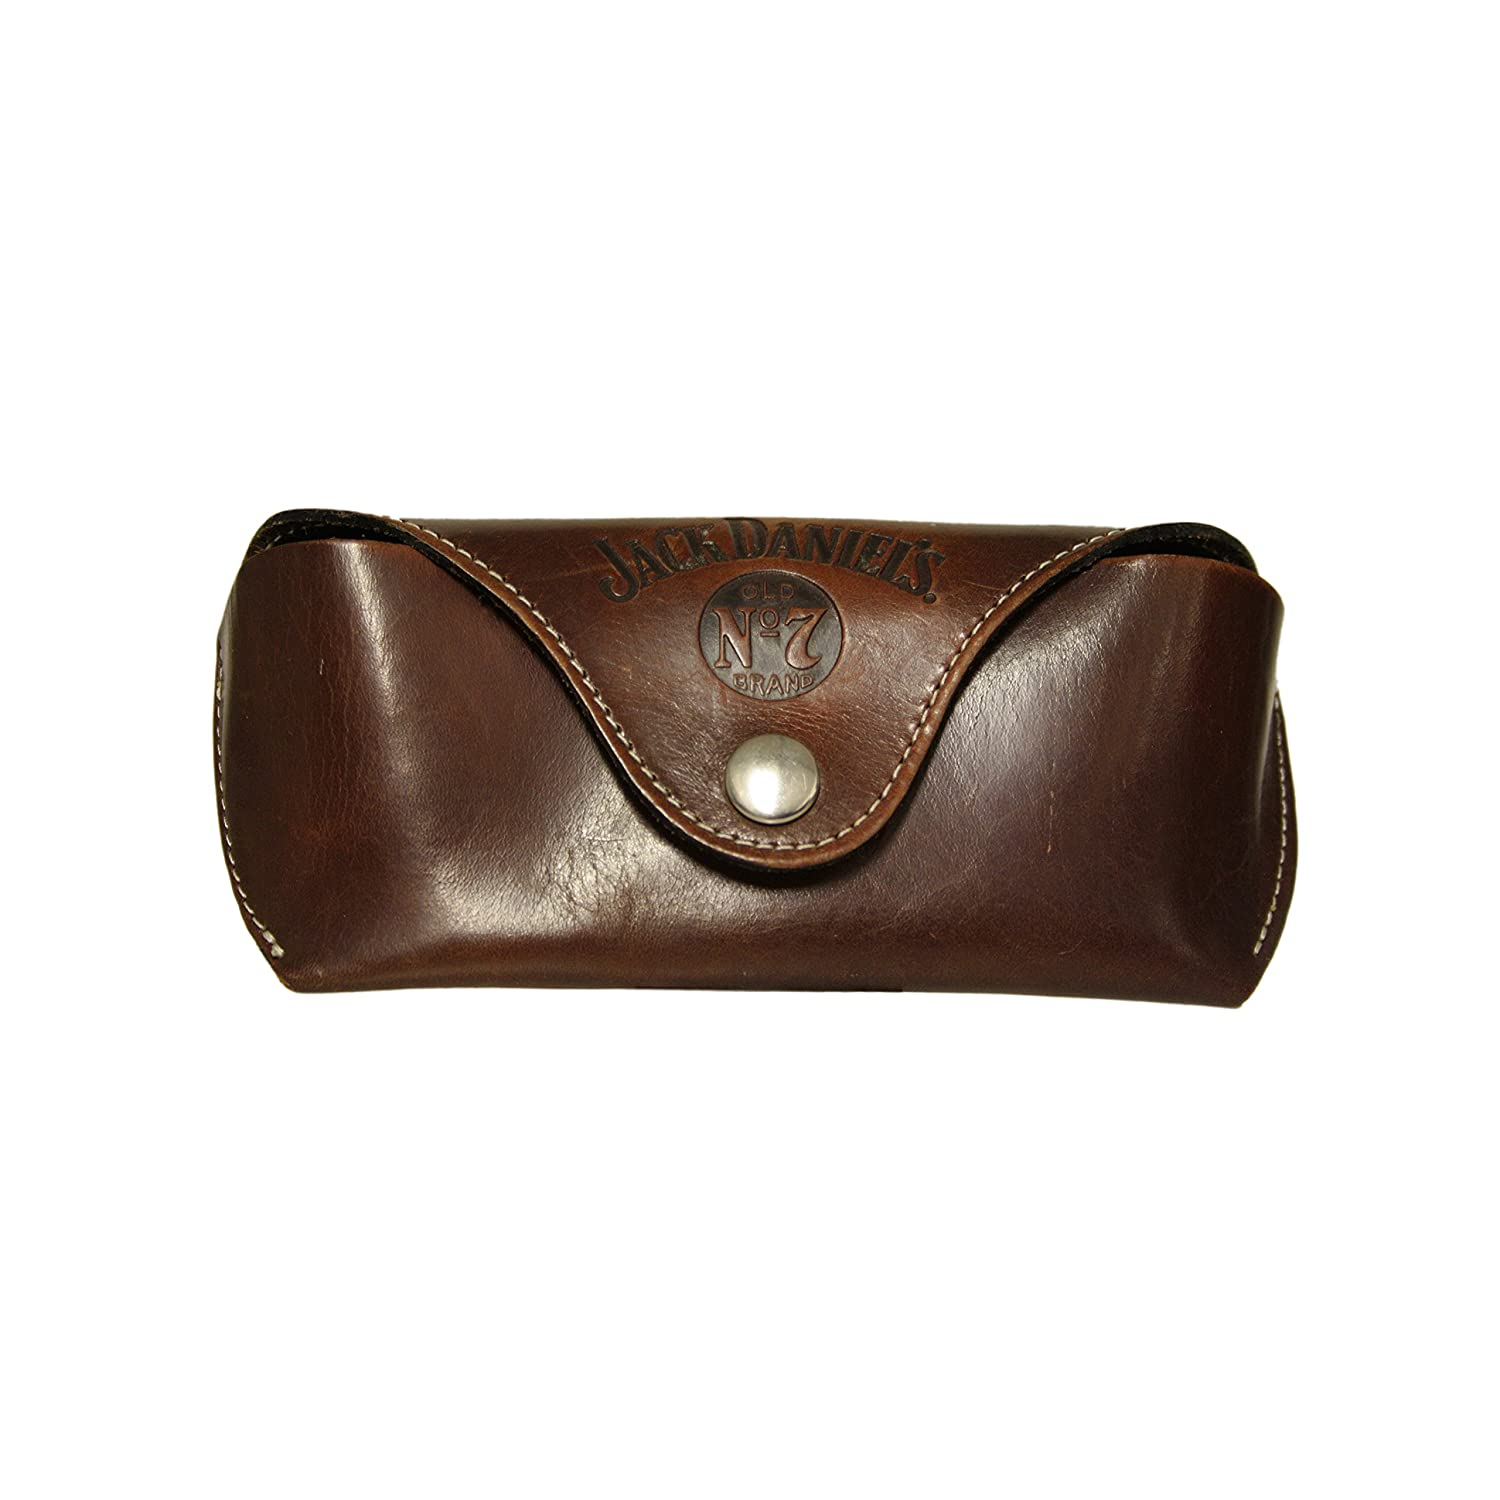 Jack Daniel's Western leather glasses case with belt loop